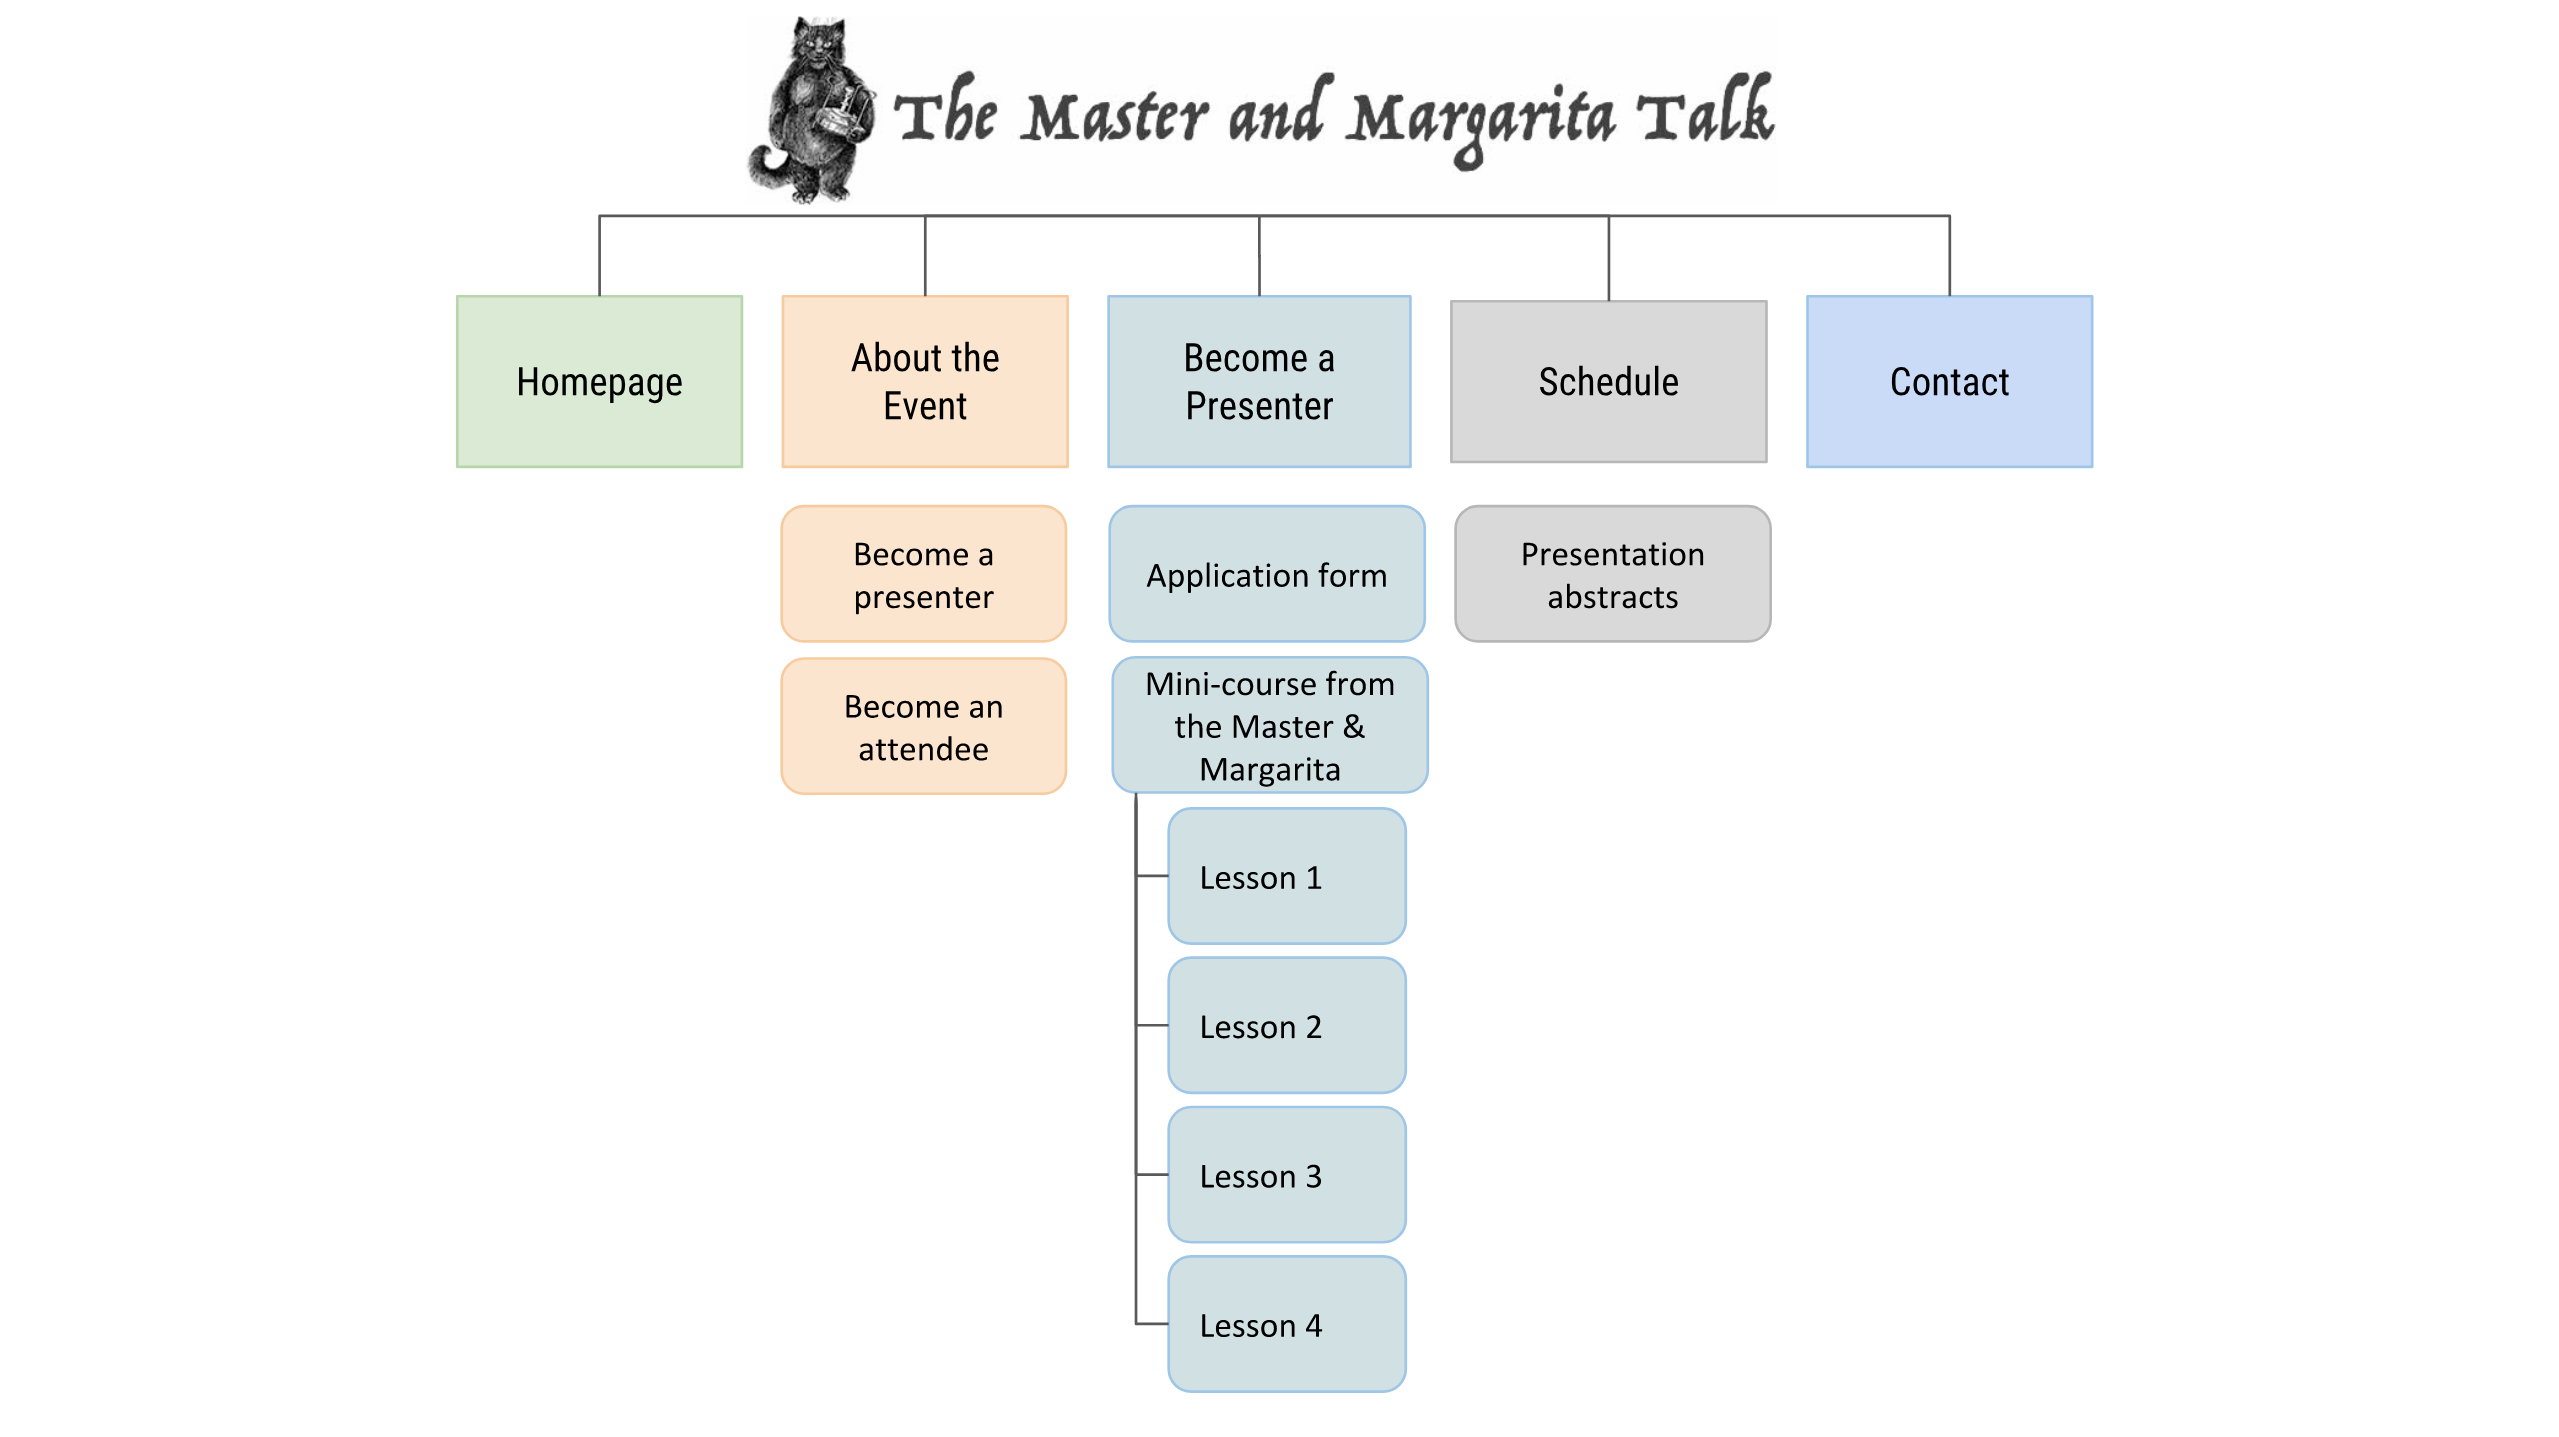 """The Master and Margarita Talk website consists of five main sections. These are """"Homepage"""", """"About the Event"""", """"Become A Presenter"""", """"Schedule"""" and """"Contact""""."""